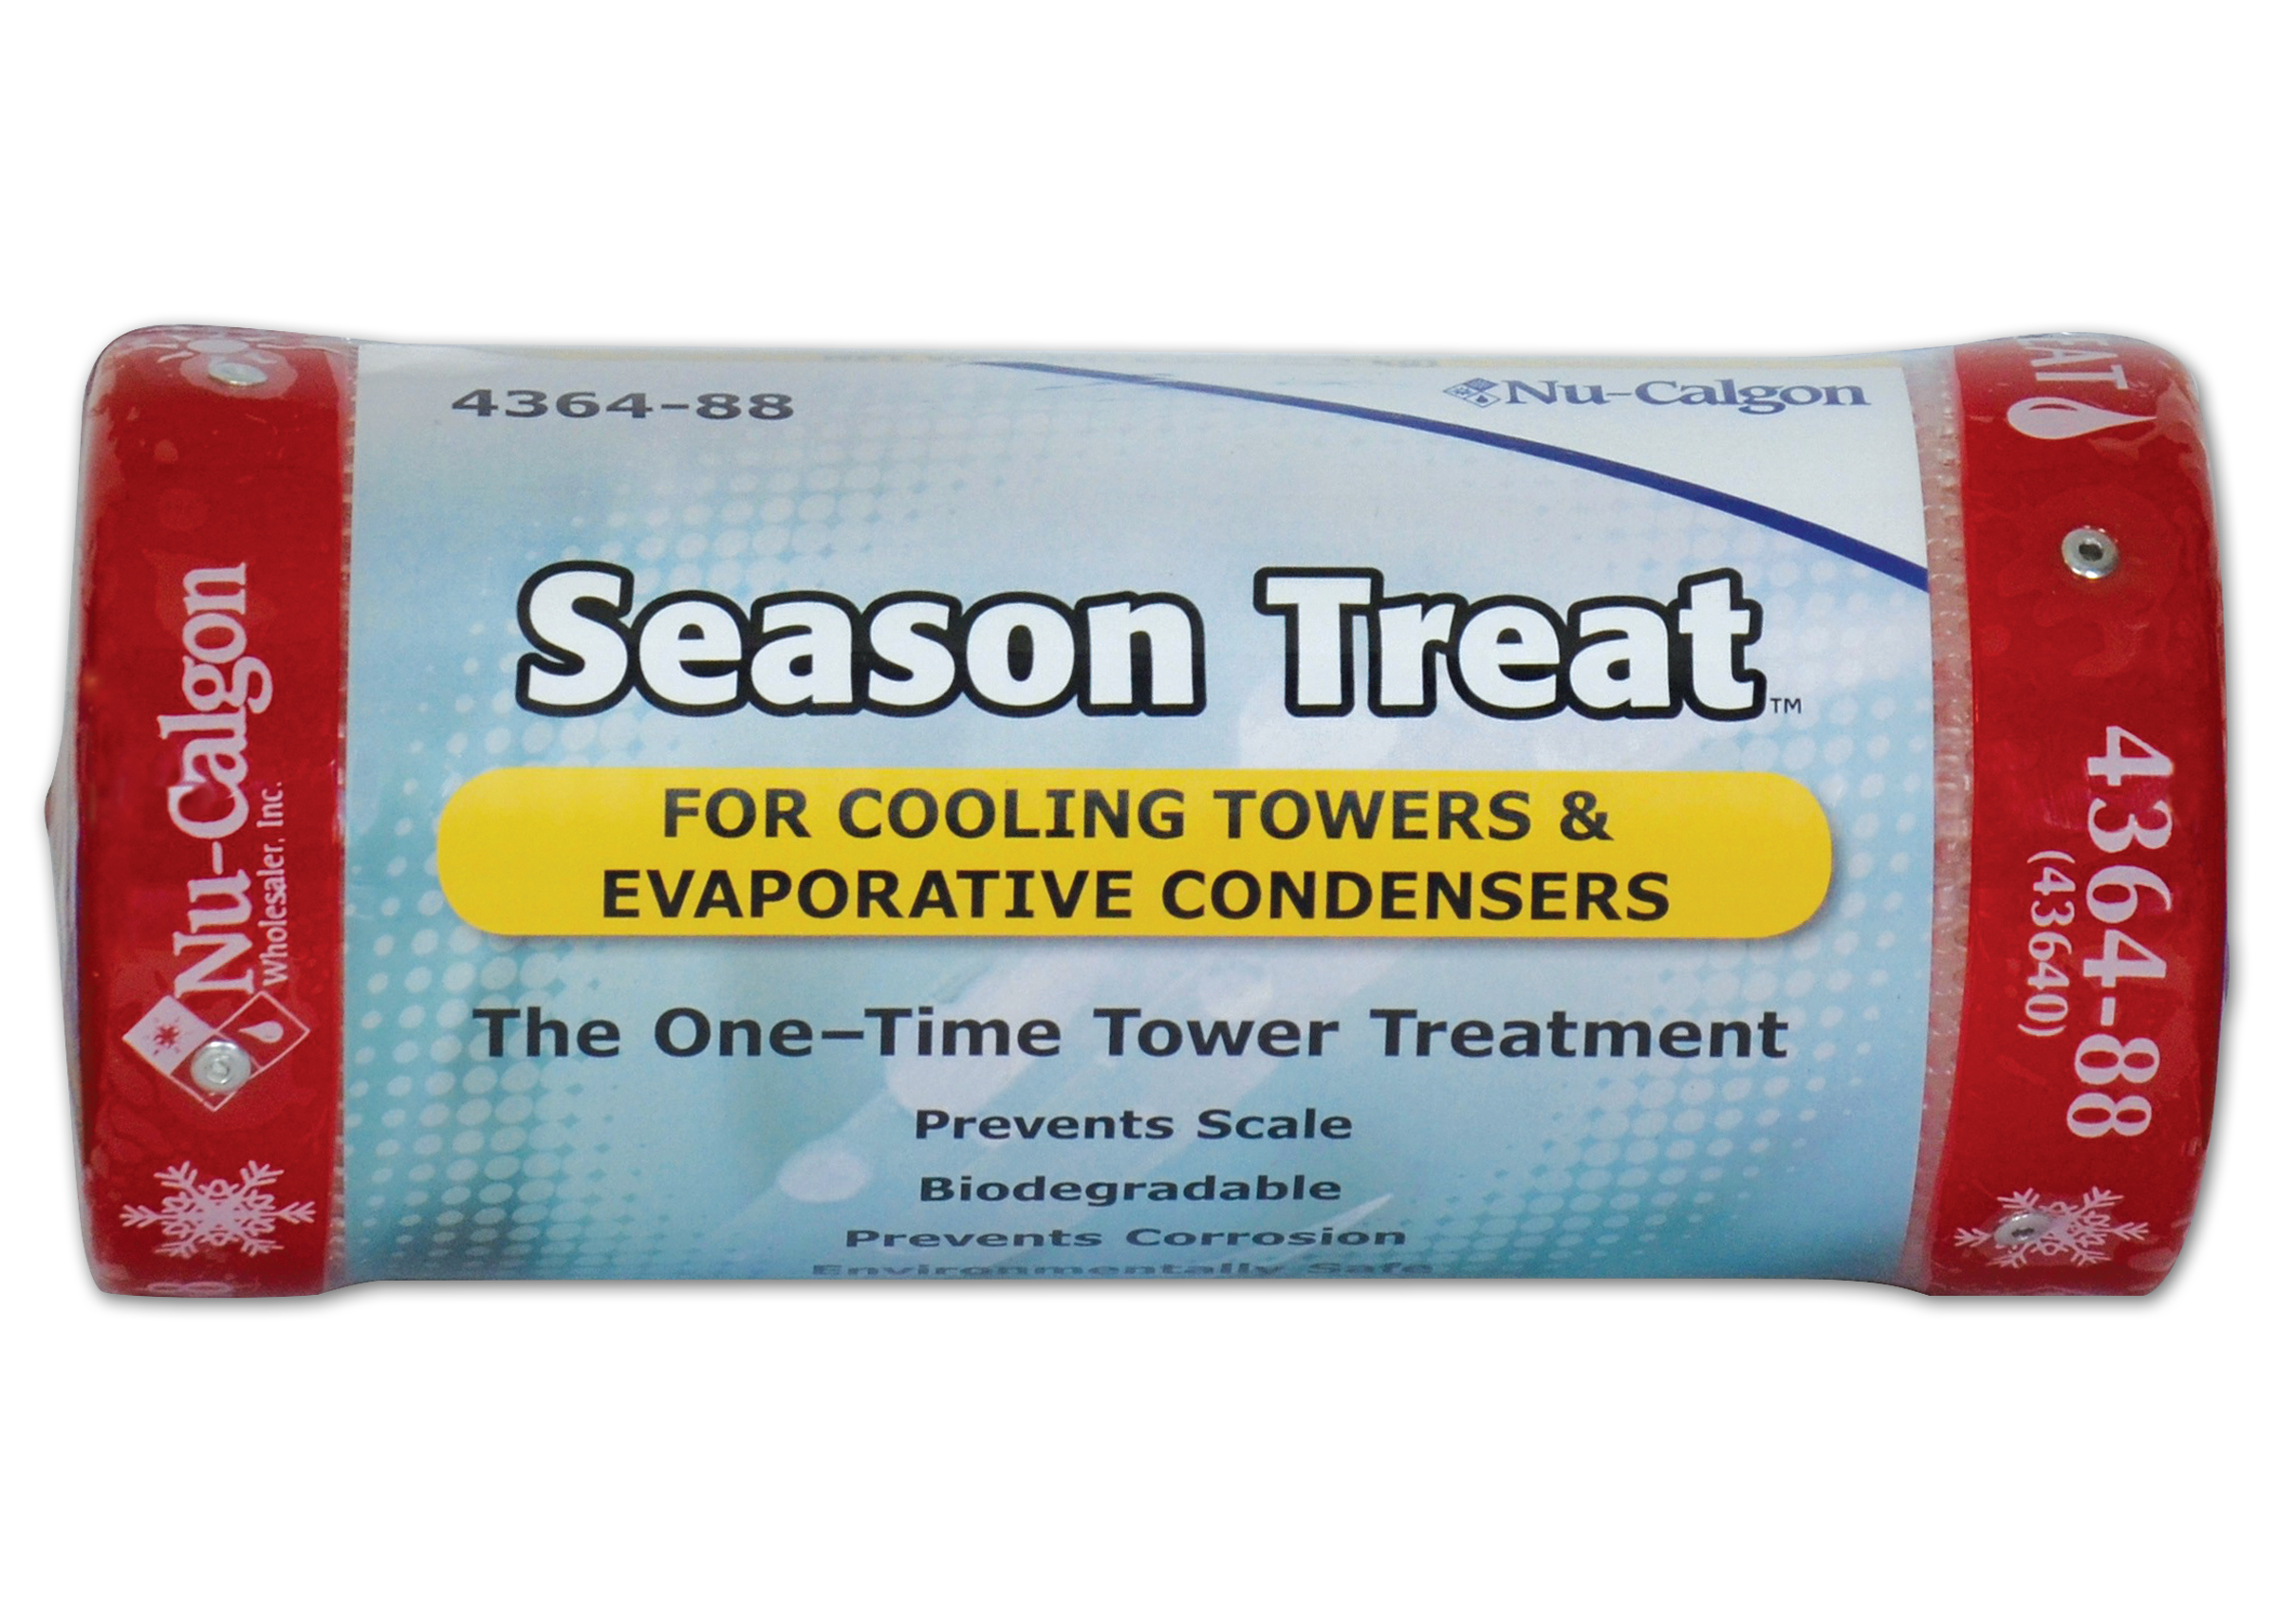 Season Treat 6rsp Micromet Nu Calgon